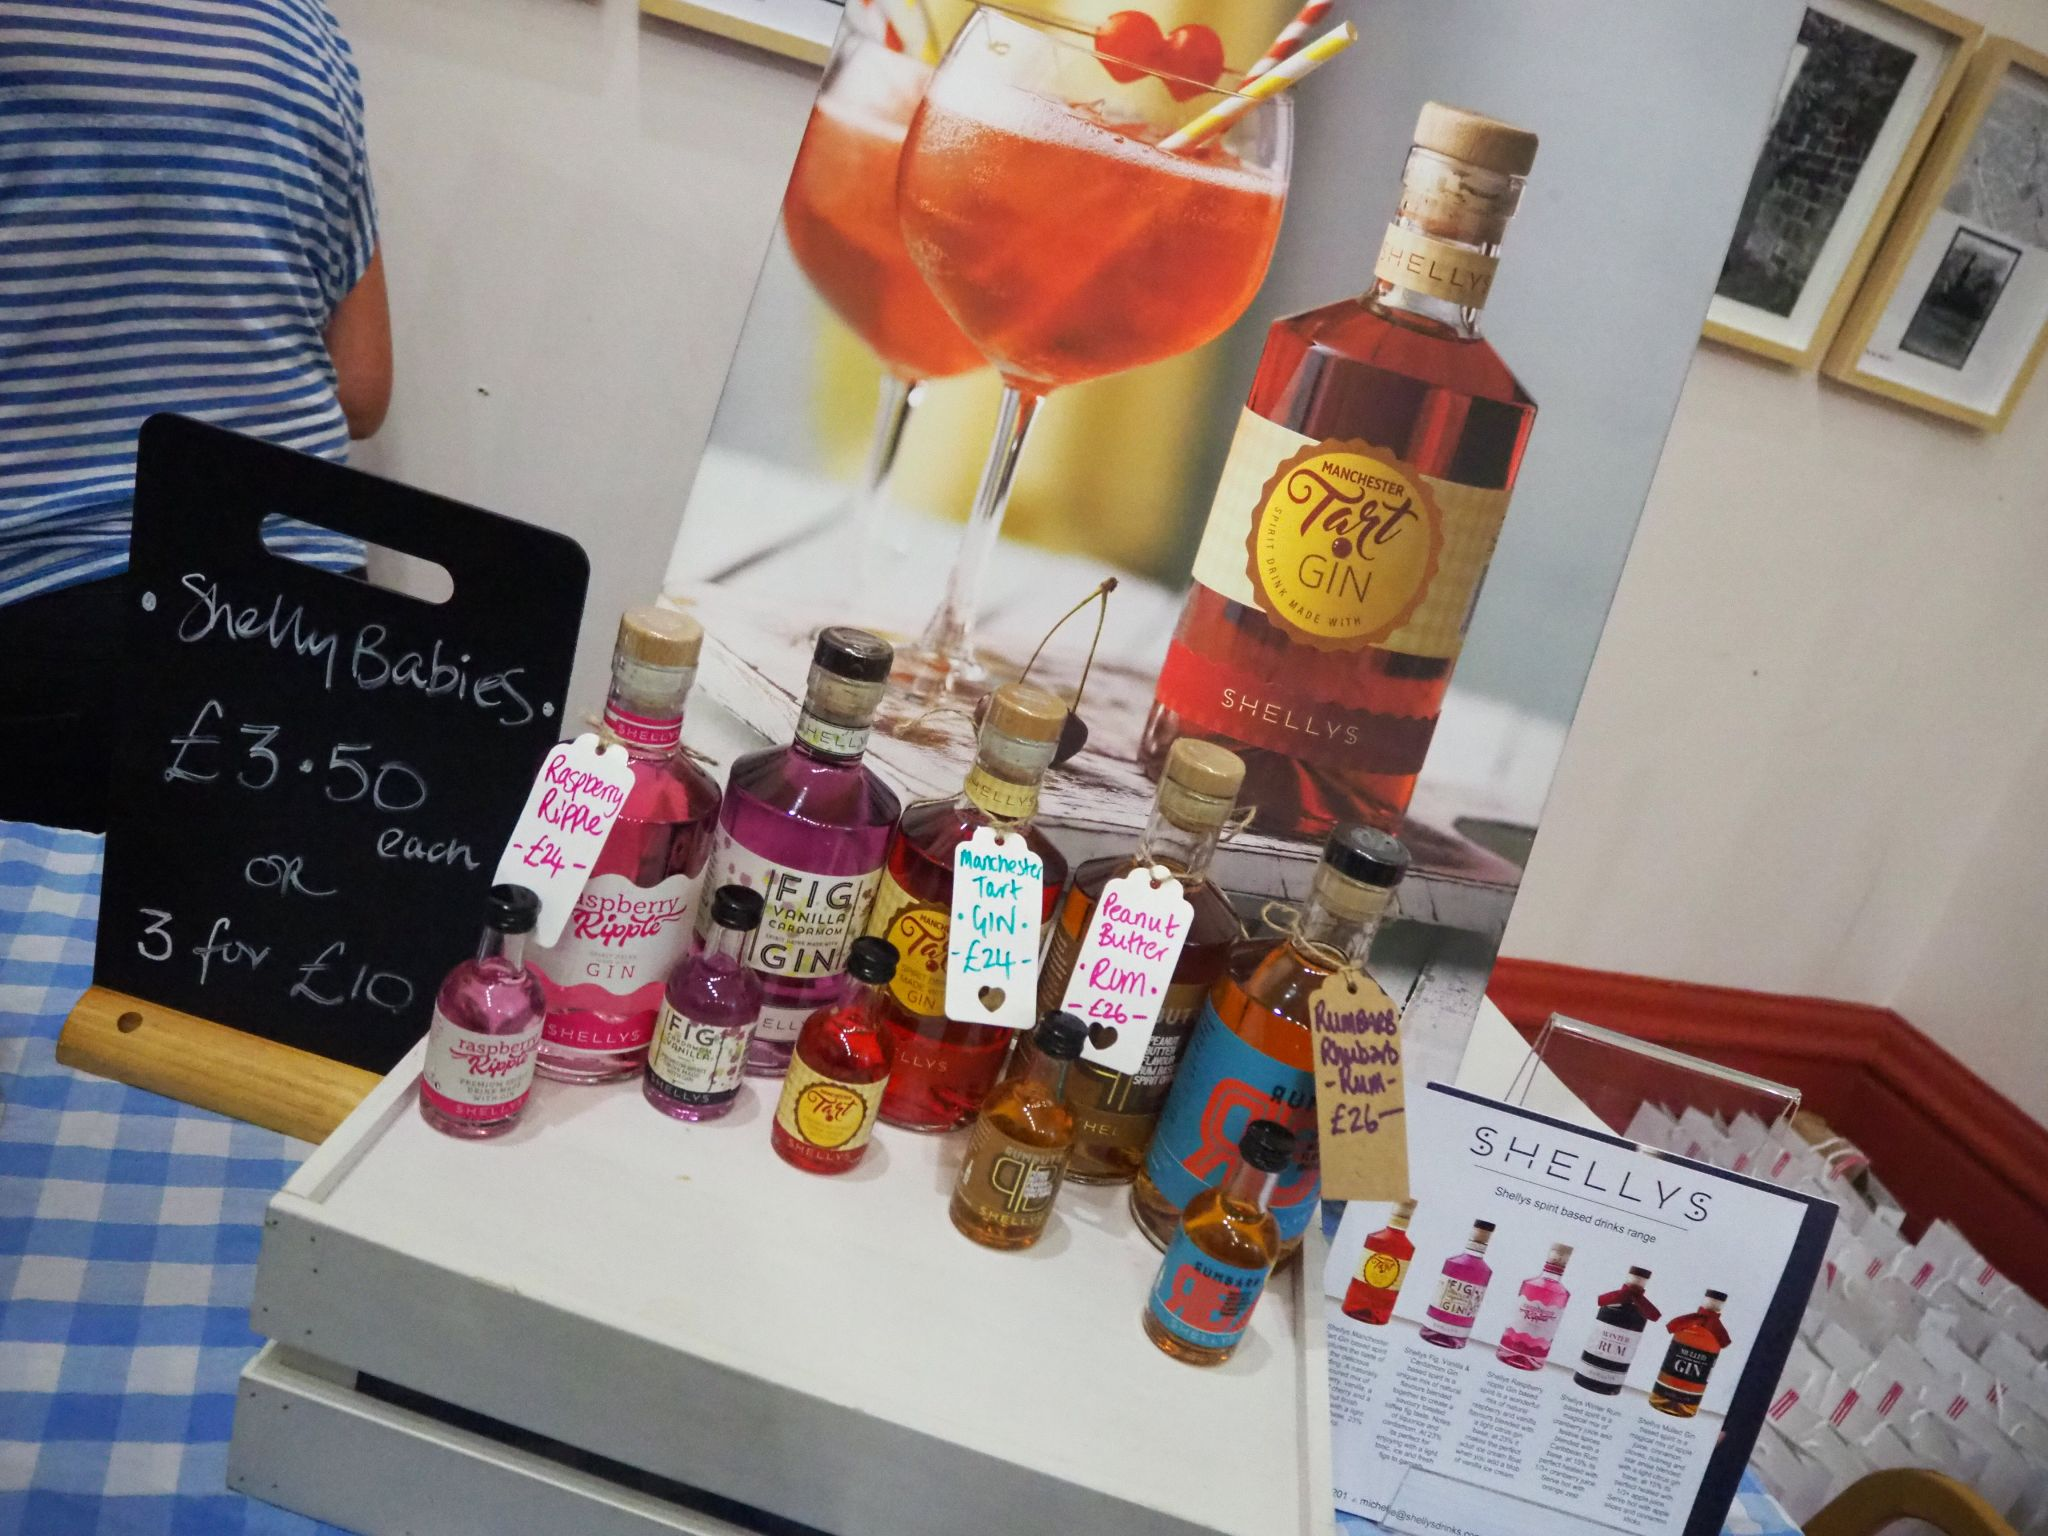 Shelley's Gin Stall